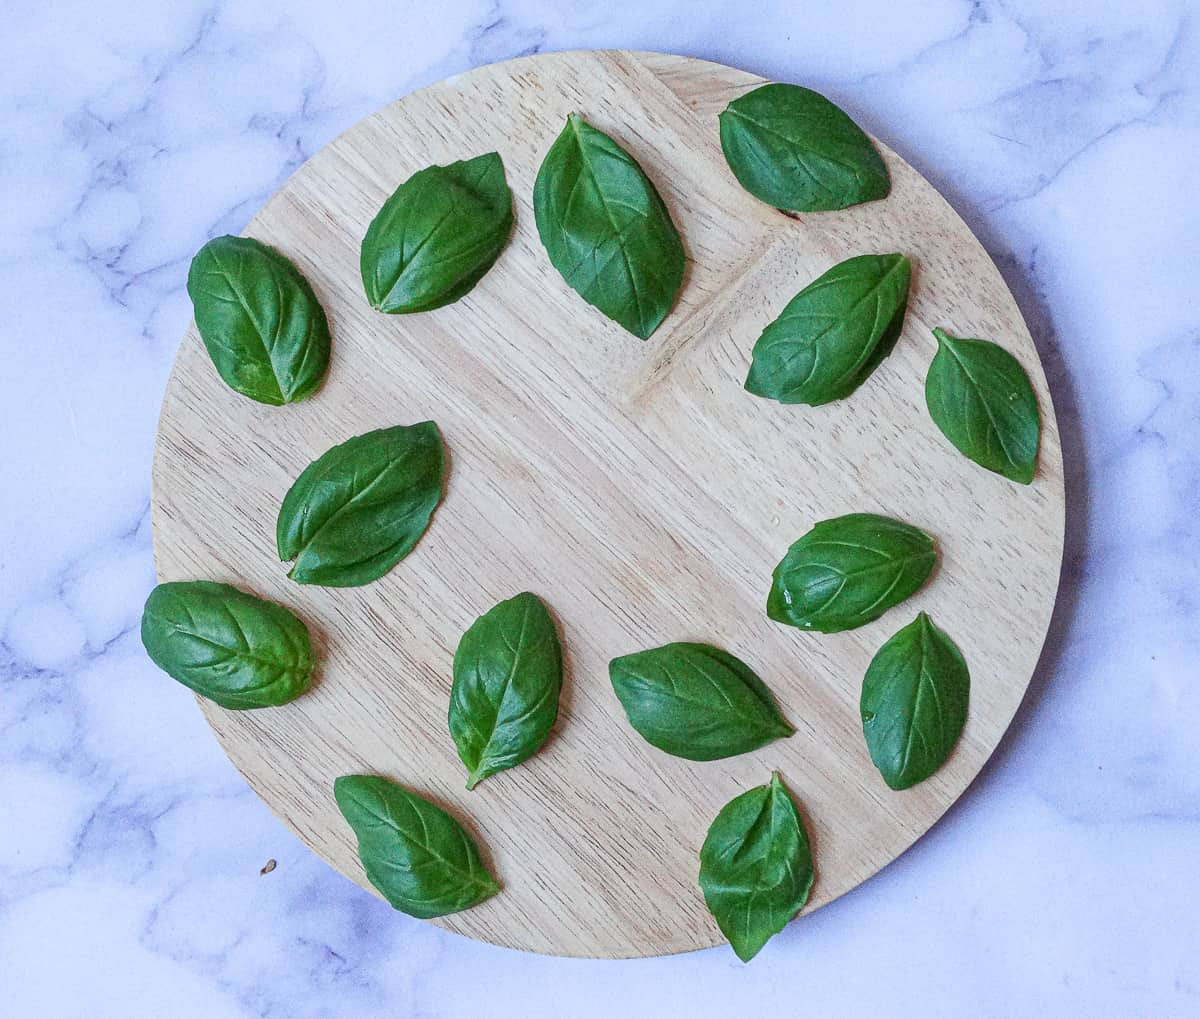 basil leaves spread out on a round wooden board